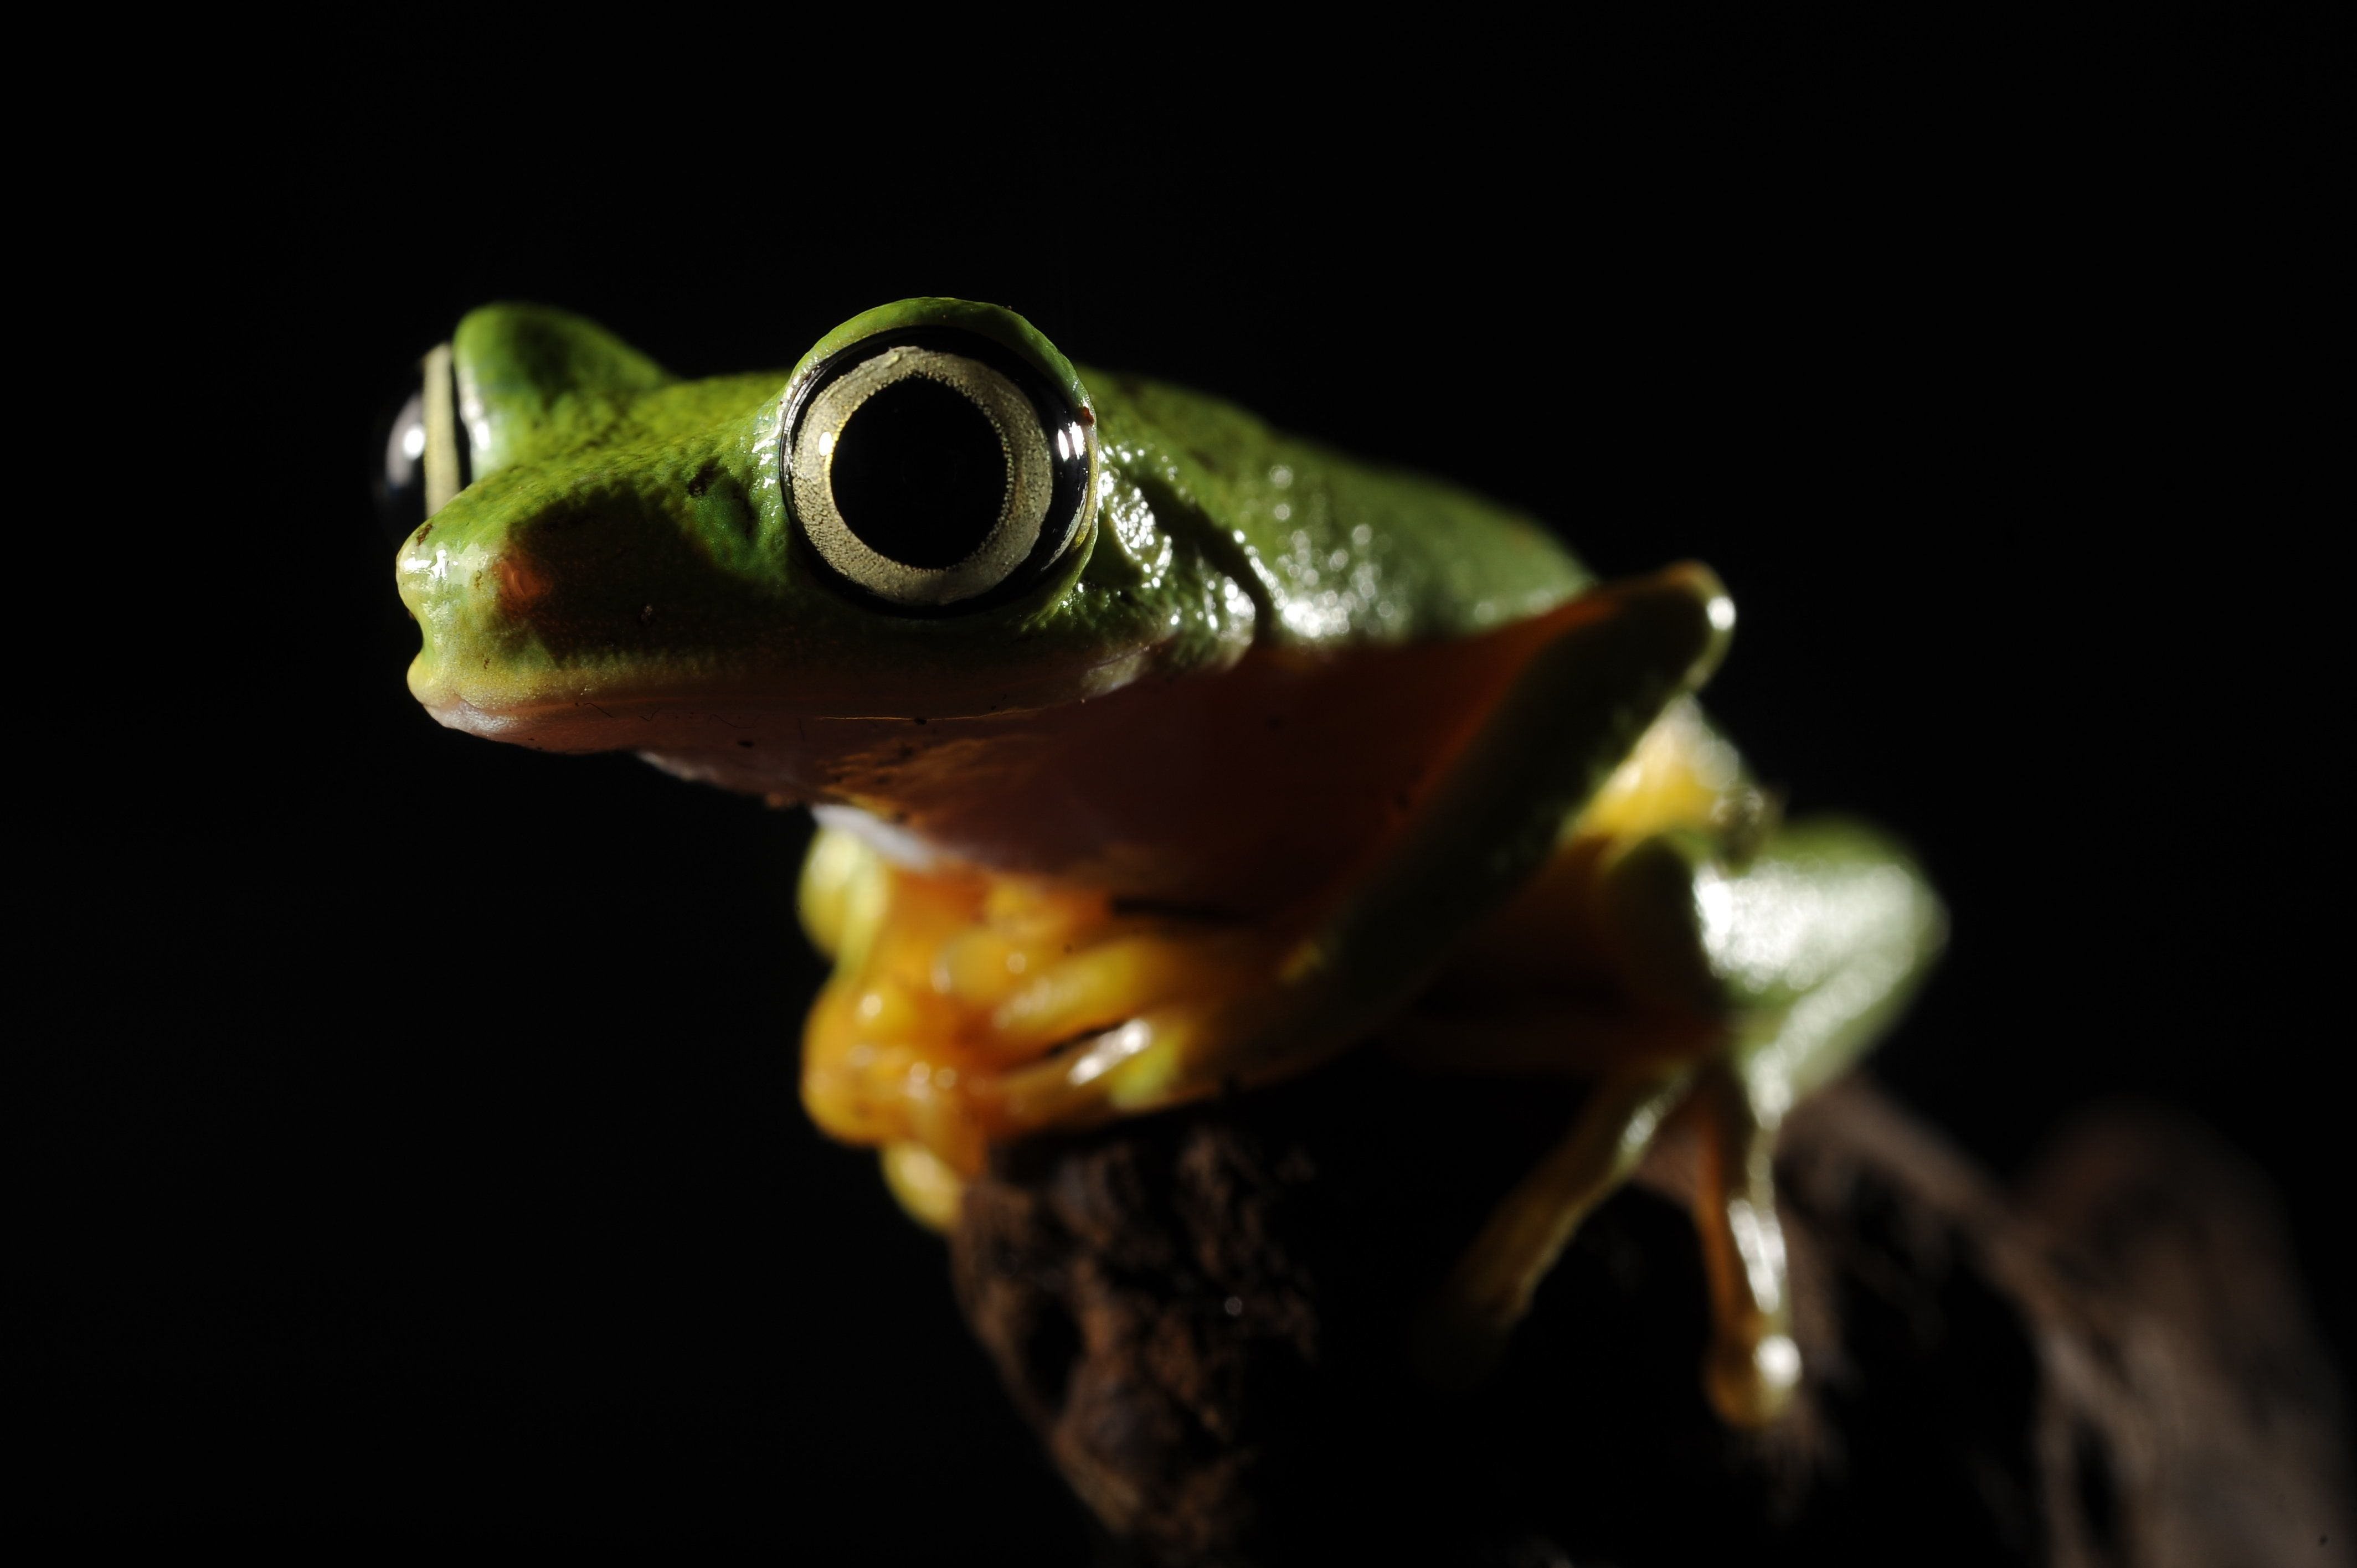 WASHINGTON, DC - July 25: A lemur leaf frog is seen at the Reptile Discovery Center at the Smithsonian National Zoological Park on Monday July 25, 2011 in Washington, DC. This type of frog is from Panama. STATUS: CRITICALLY ENDANGERED. (Photo by Matt McClain/For The Washington Post via Getty Images)Post)